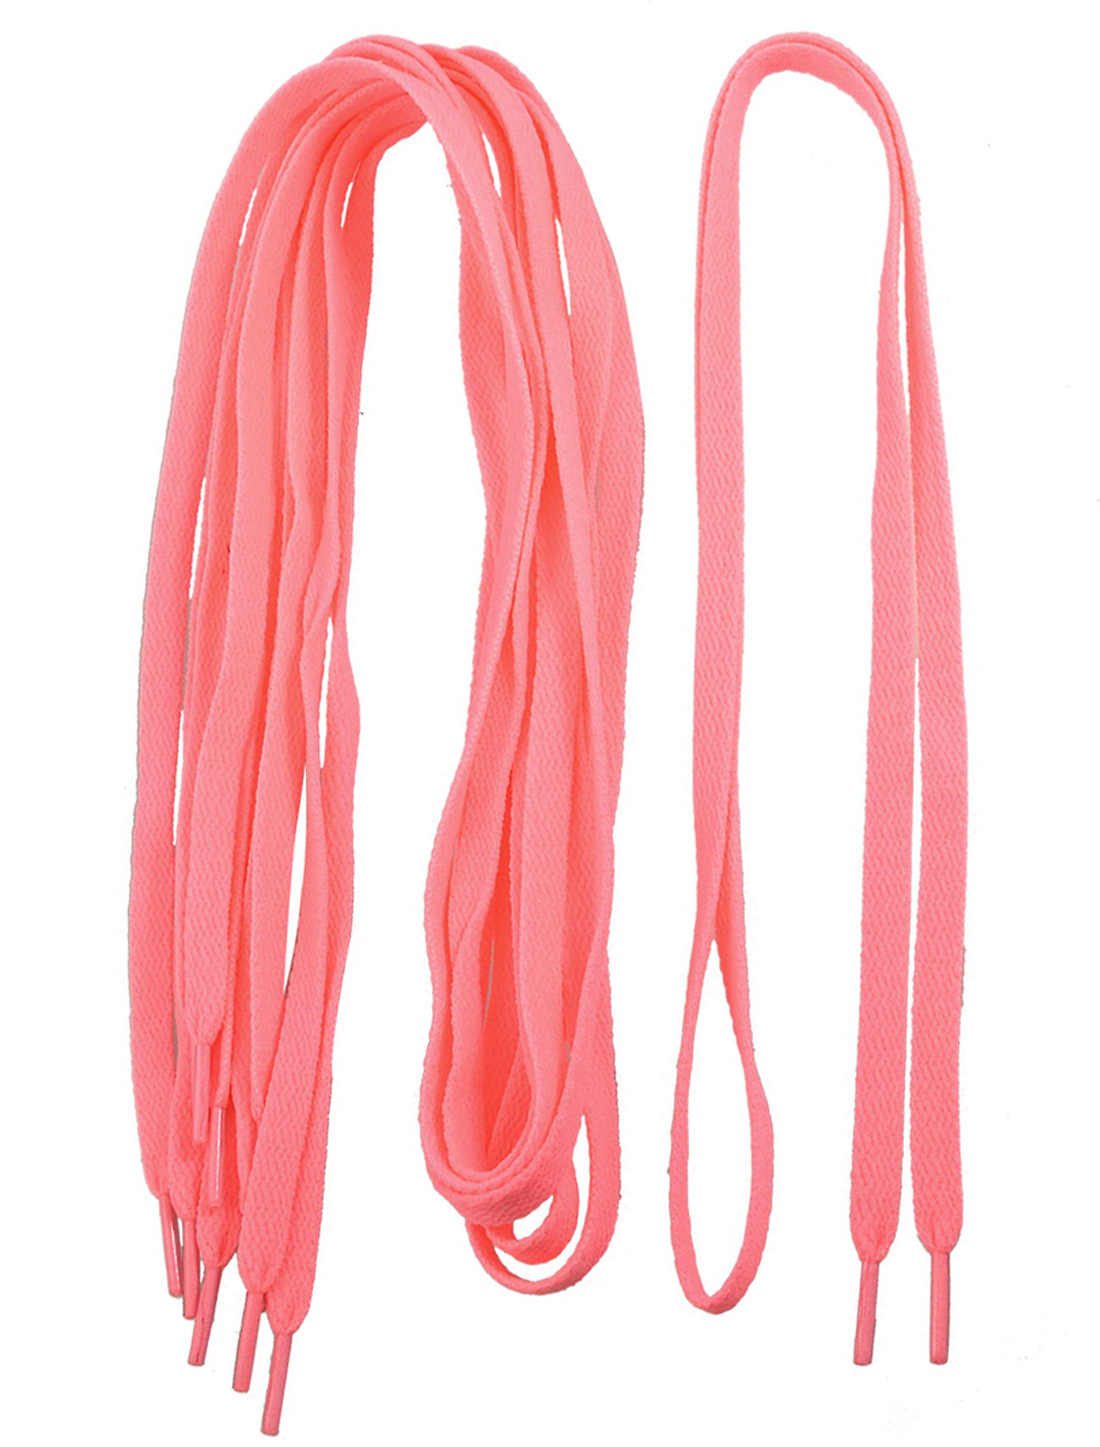 "41.7"" Long Peach Pink Flat Shoes String Shoelaces 3 Pairs for Lady"